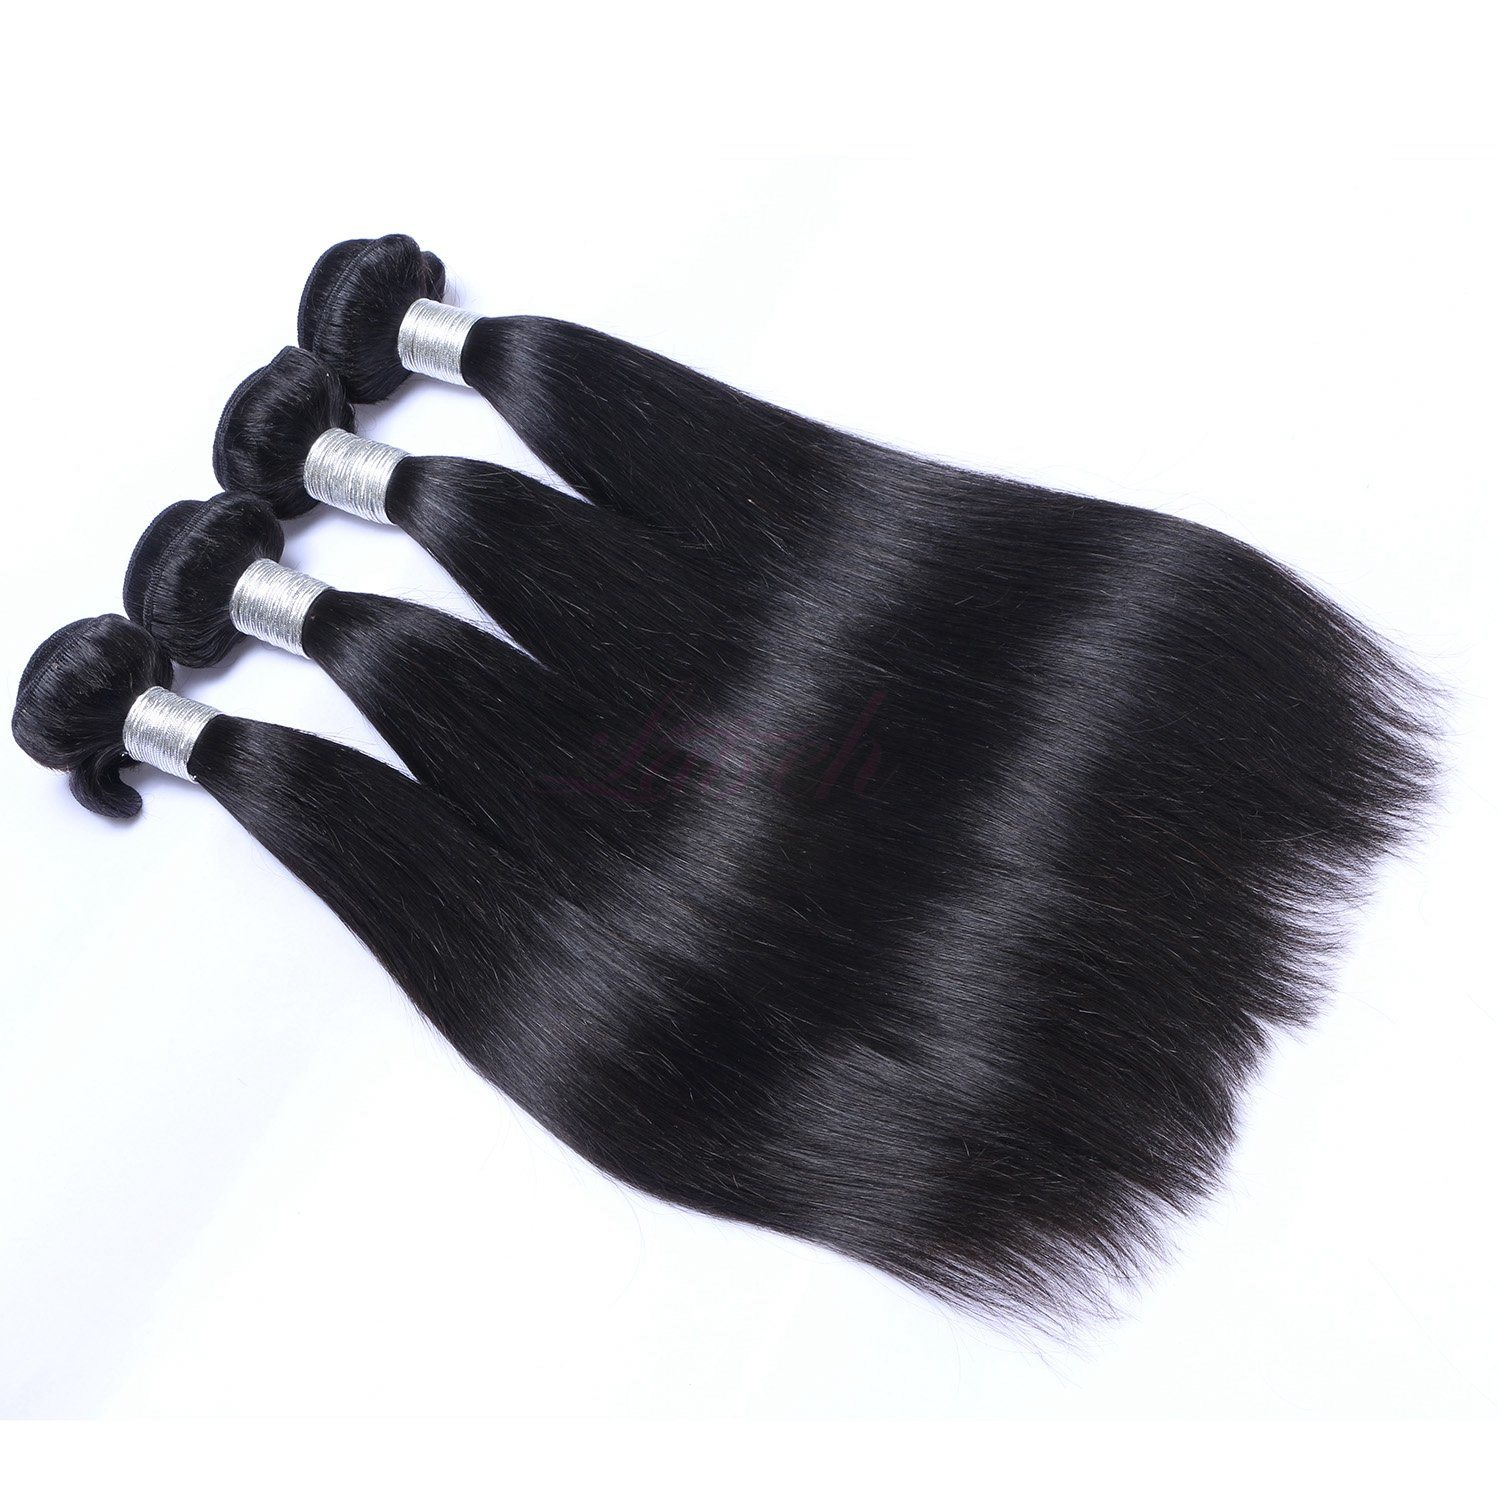 China Real Vrgin 10a Peruvian Hair Weaving With Full Cuticle China